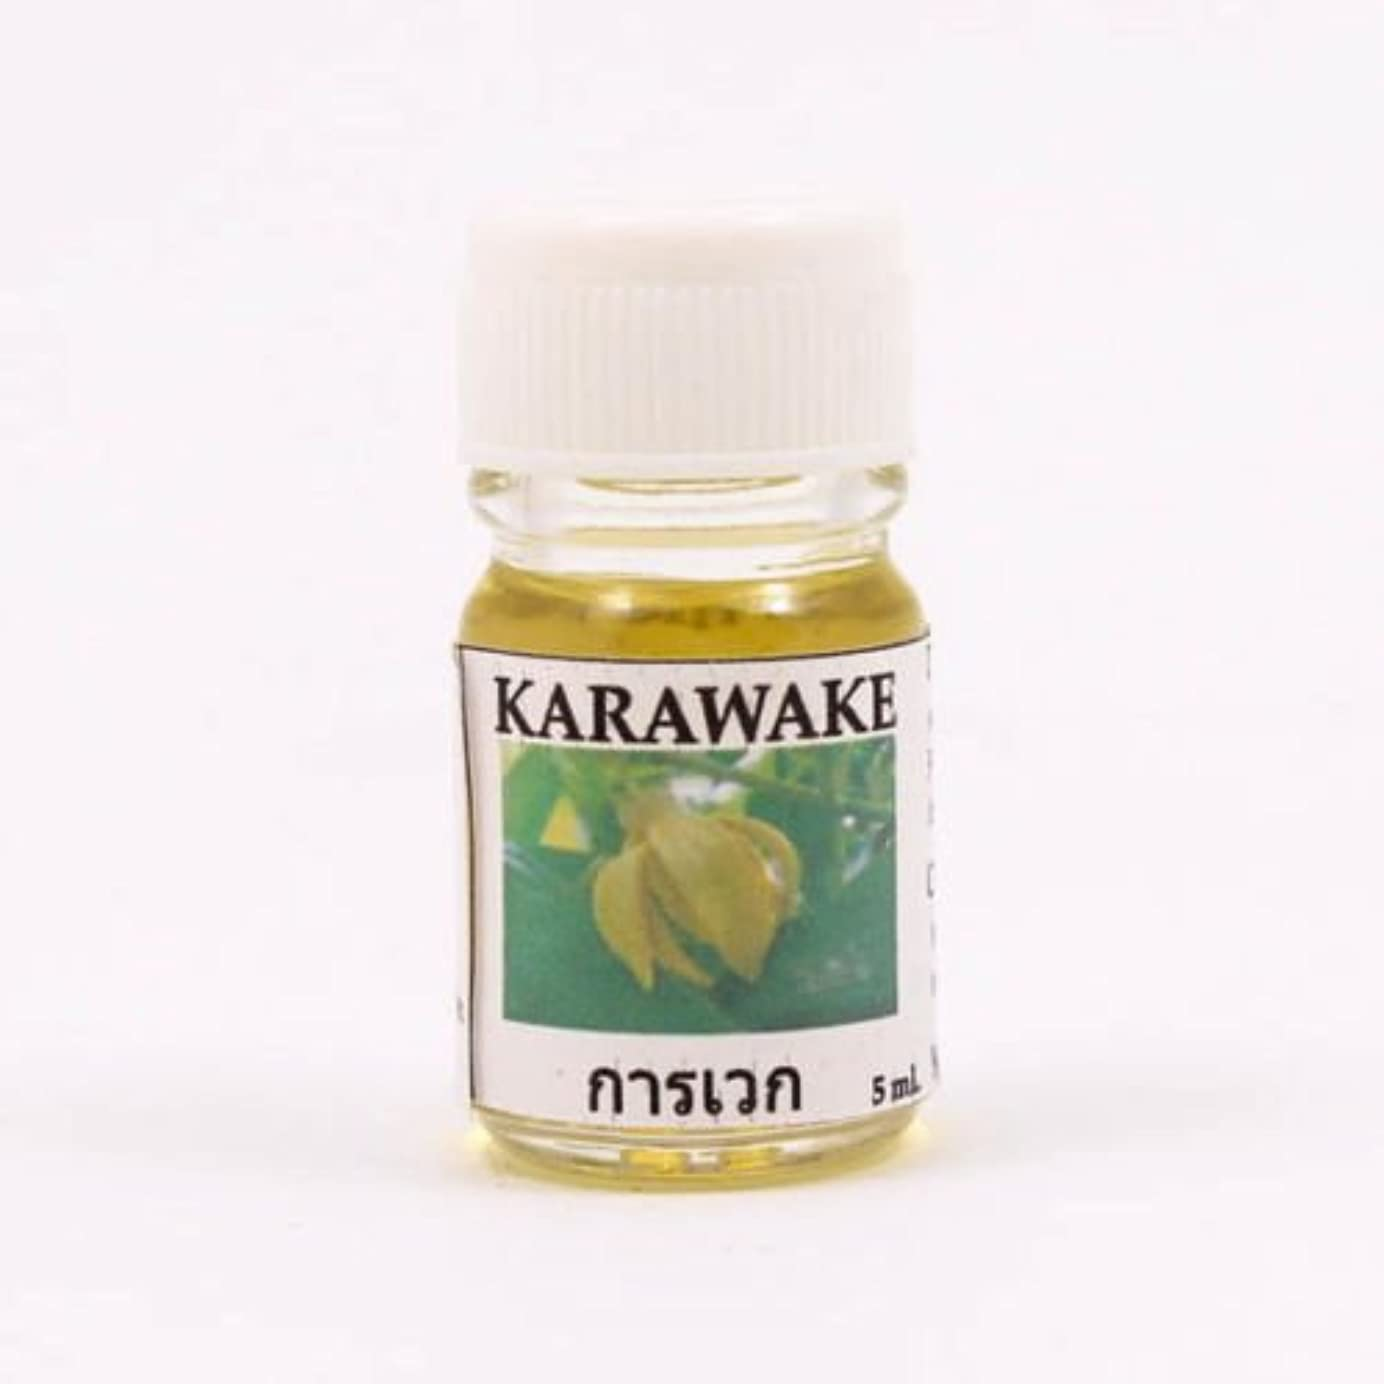 ご予約早く収容する6X Karawake Aroma Fragrance Essential Oil 5ML. cc Diffuser Burner Therapy